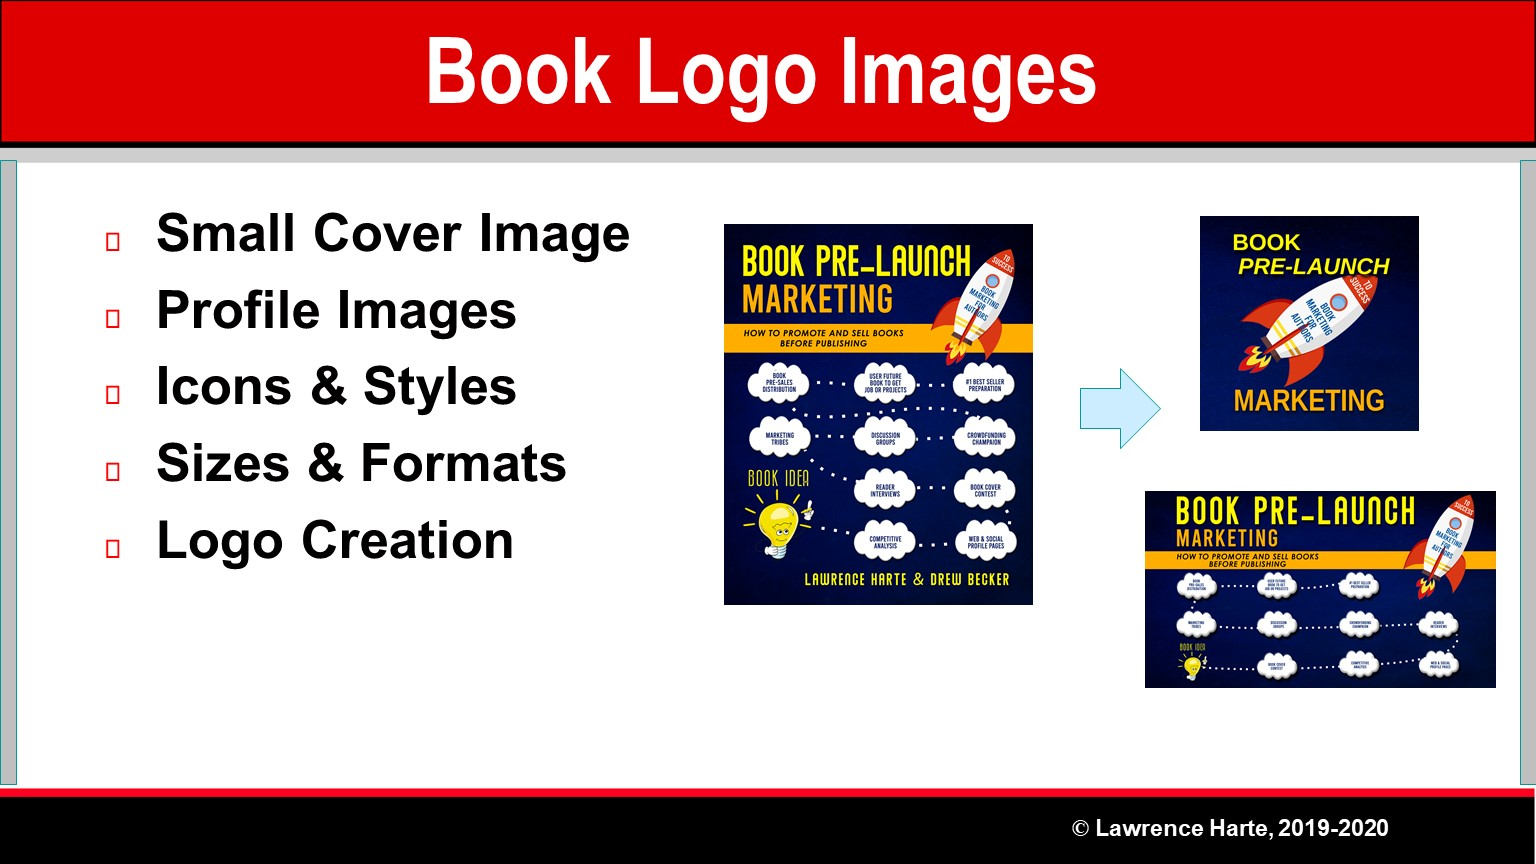 Book Pre-Launch Marketing Cover Logo Images